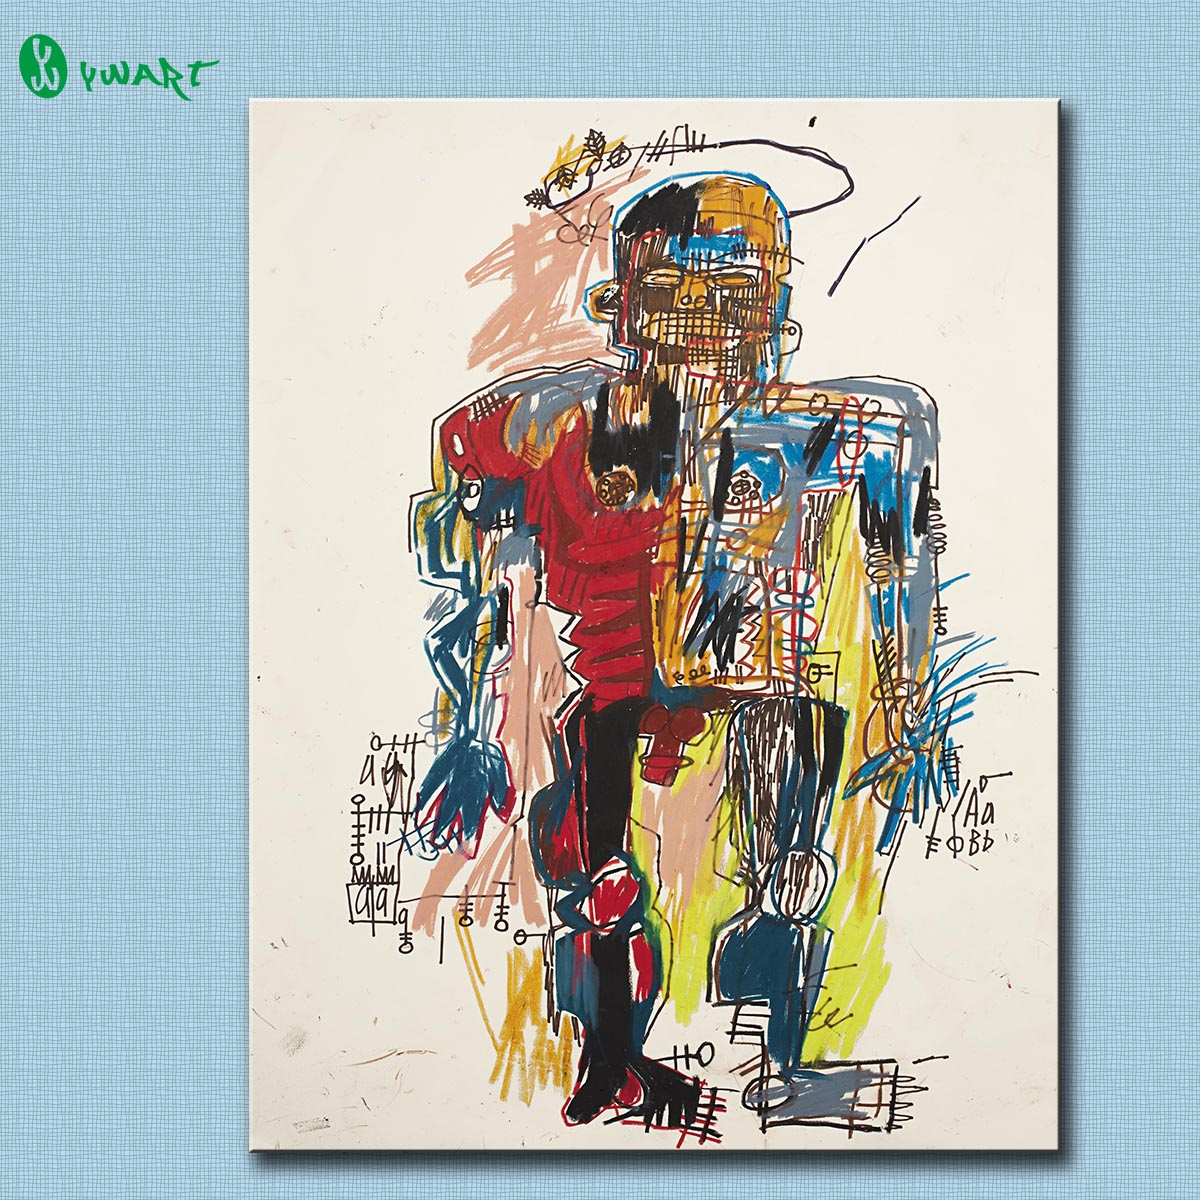 Self-Portrait 1982 by Jean-Michel Basquiat GRAFFITI ART POSTER PRINT ON CANVAS FOR HOME DECORATION Free Shipping(China (Mainland))